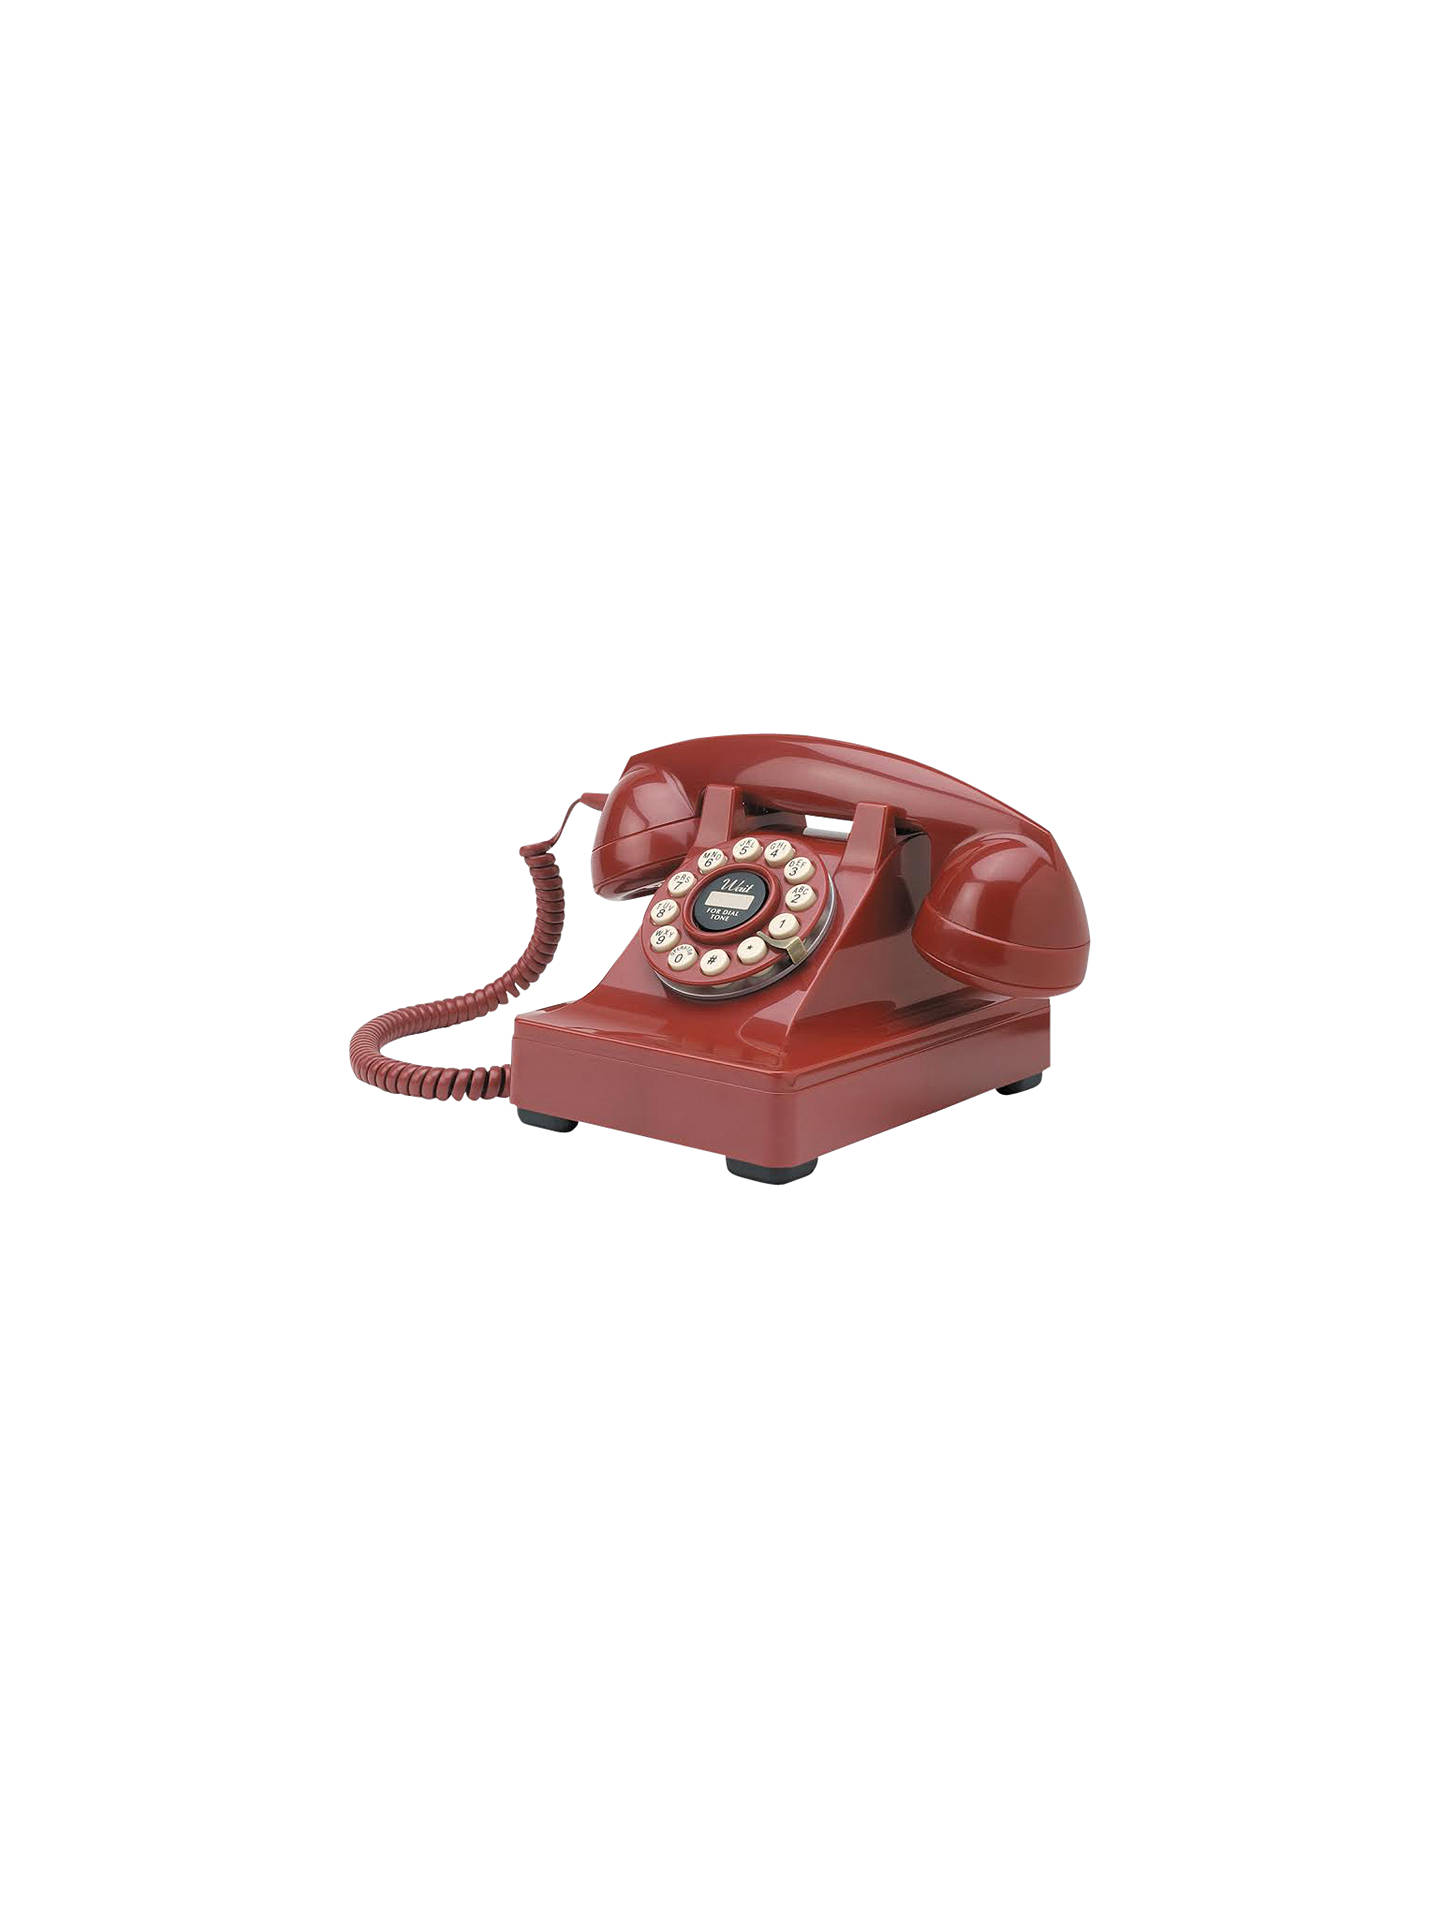 Buy Wild & Wolf Series 302 Corded Phone, Red Online at johnlewis.com